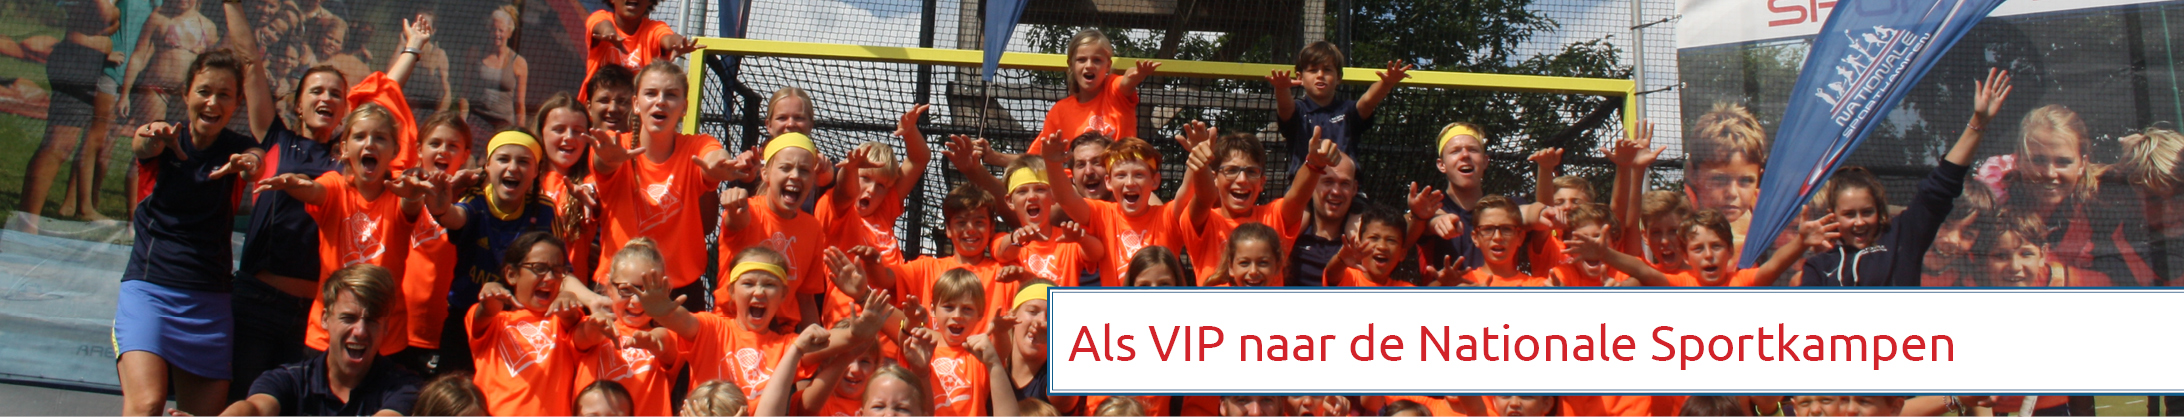 VIP Nationale Sportkampen